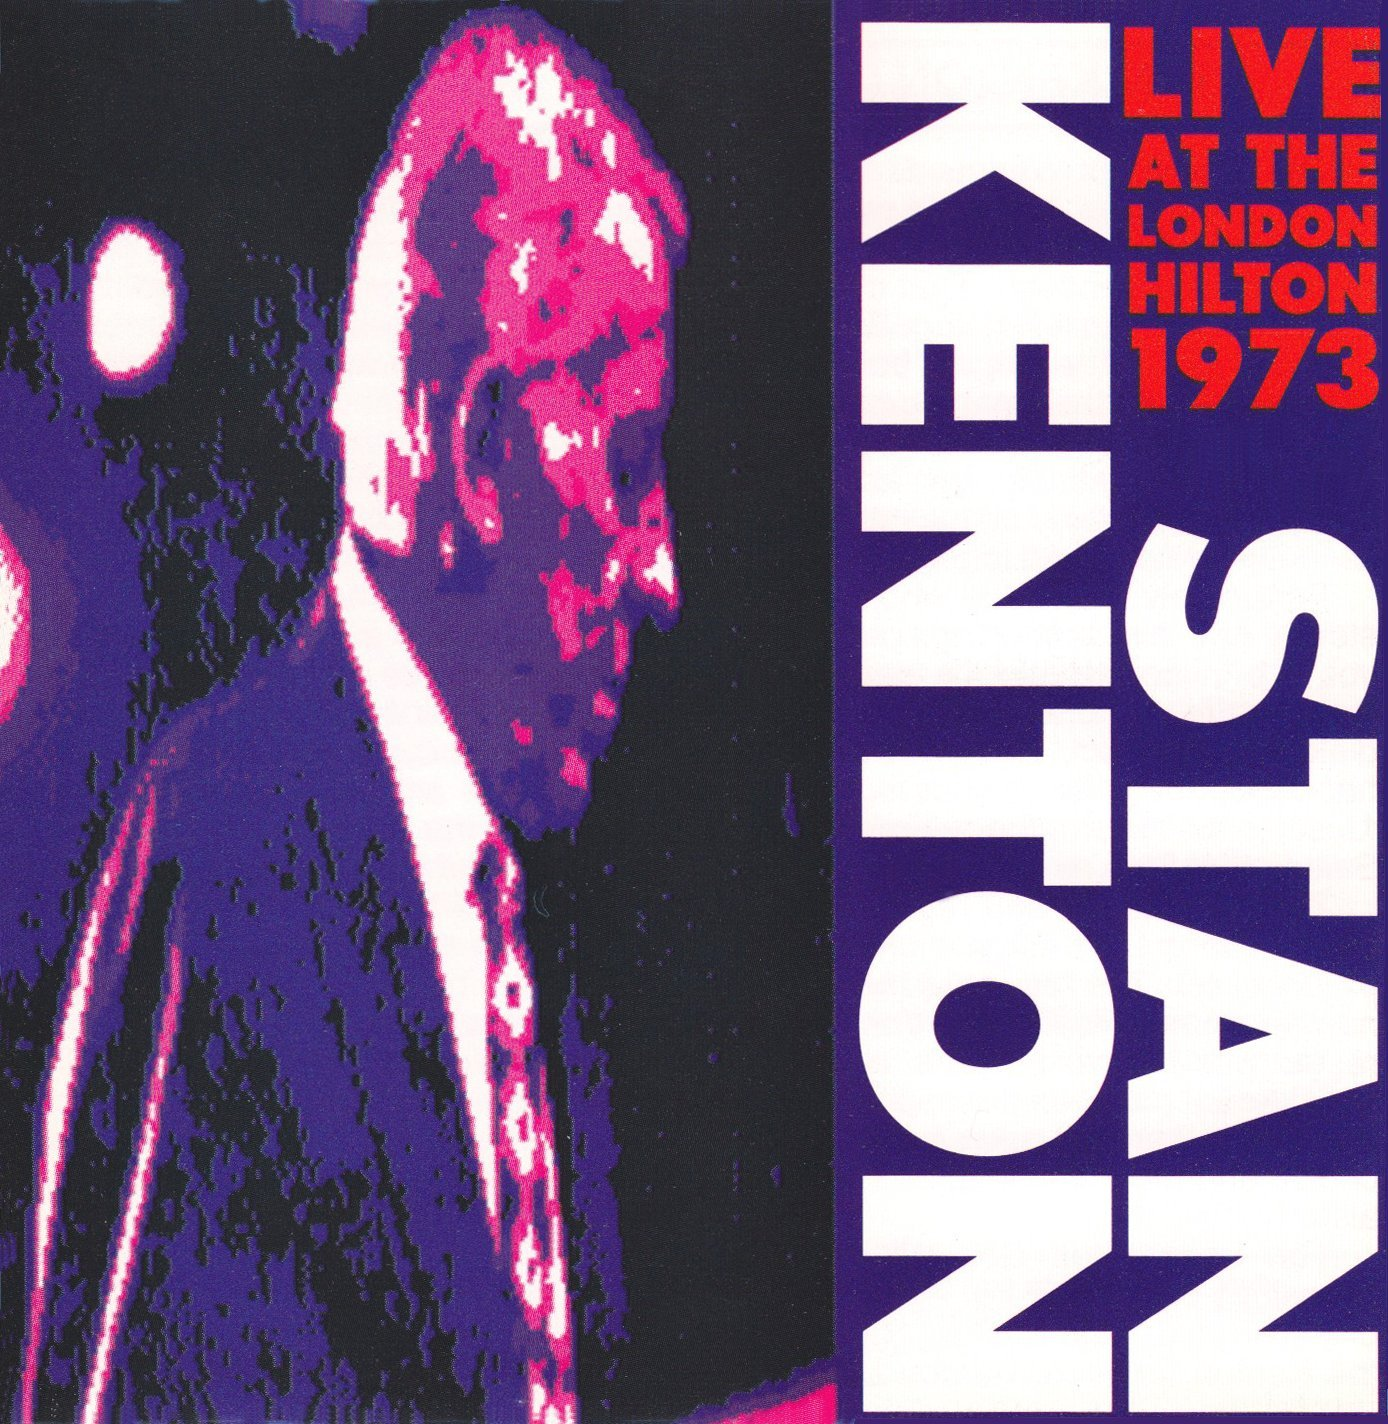 Live At The London Hilton 1973, Vol. 1 by Status Records